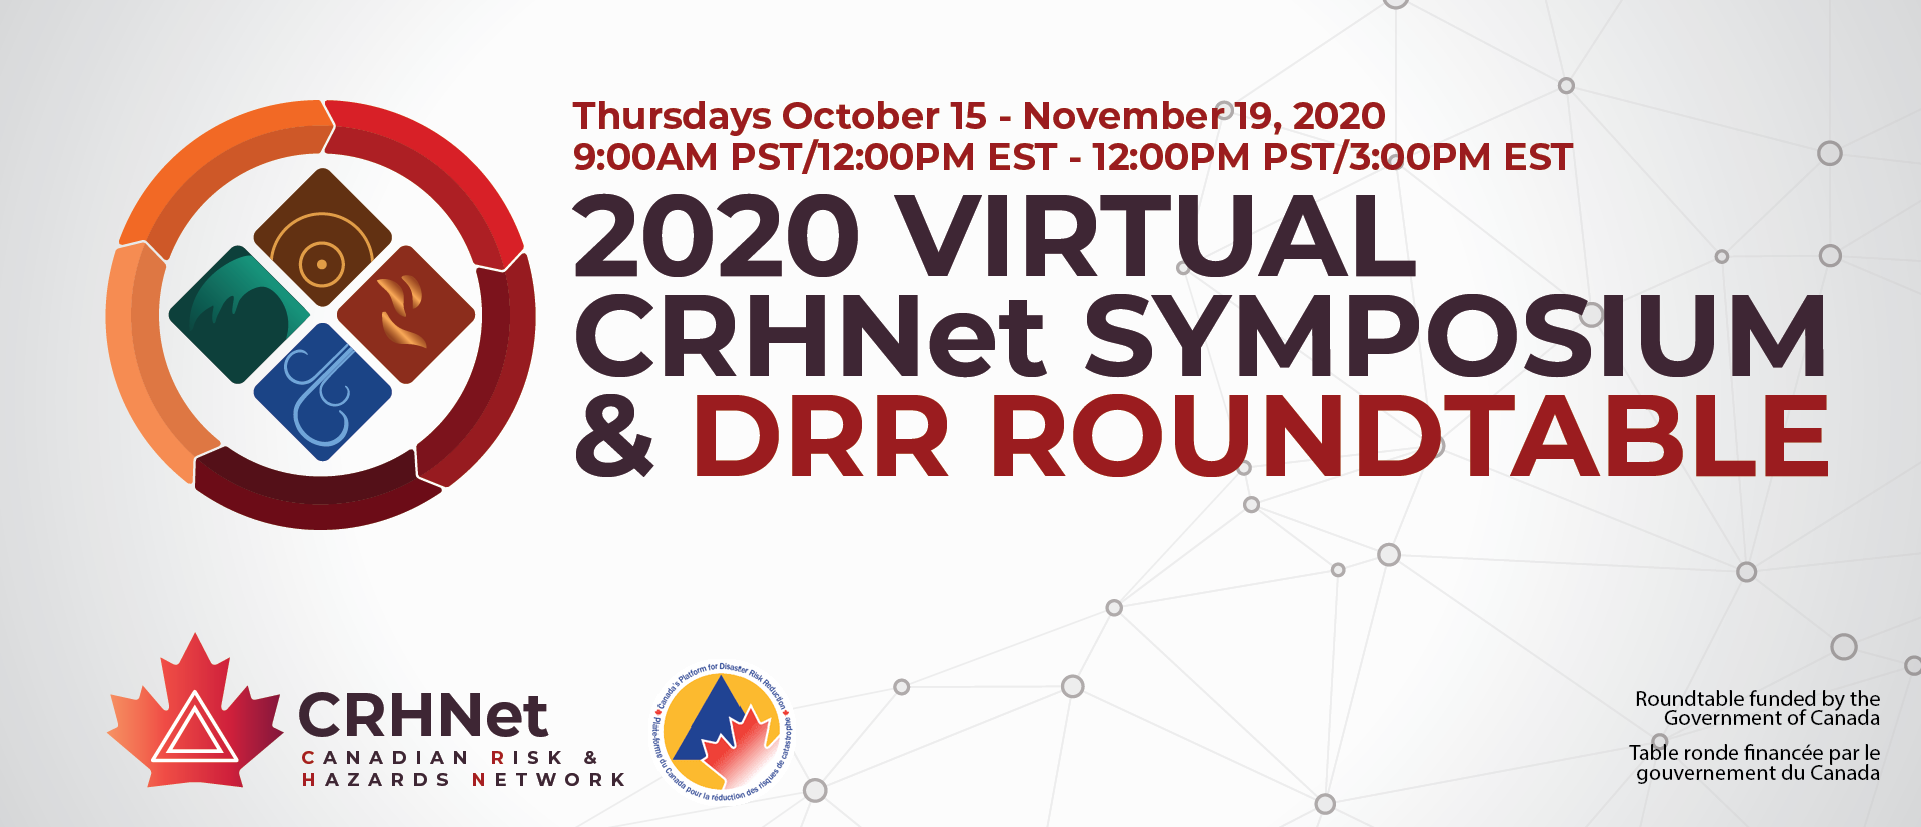 poster for 2020 Virtual CRHNet Symposium & DRR Roundtable